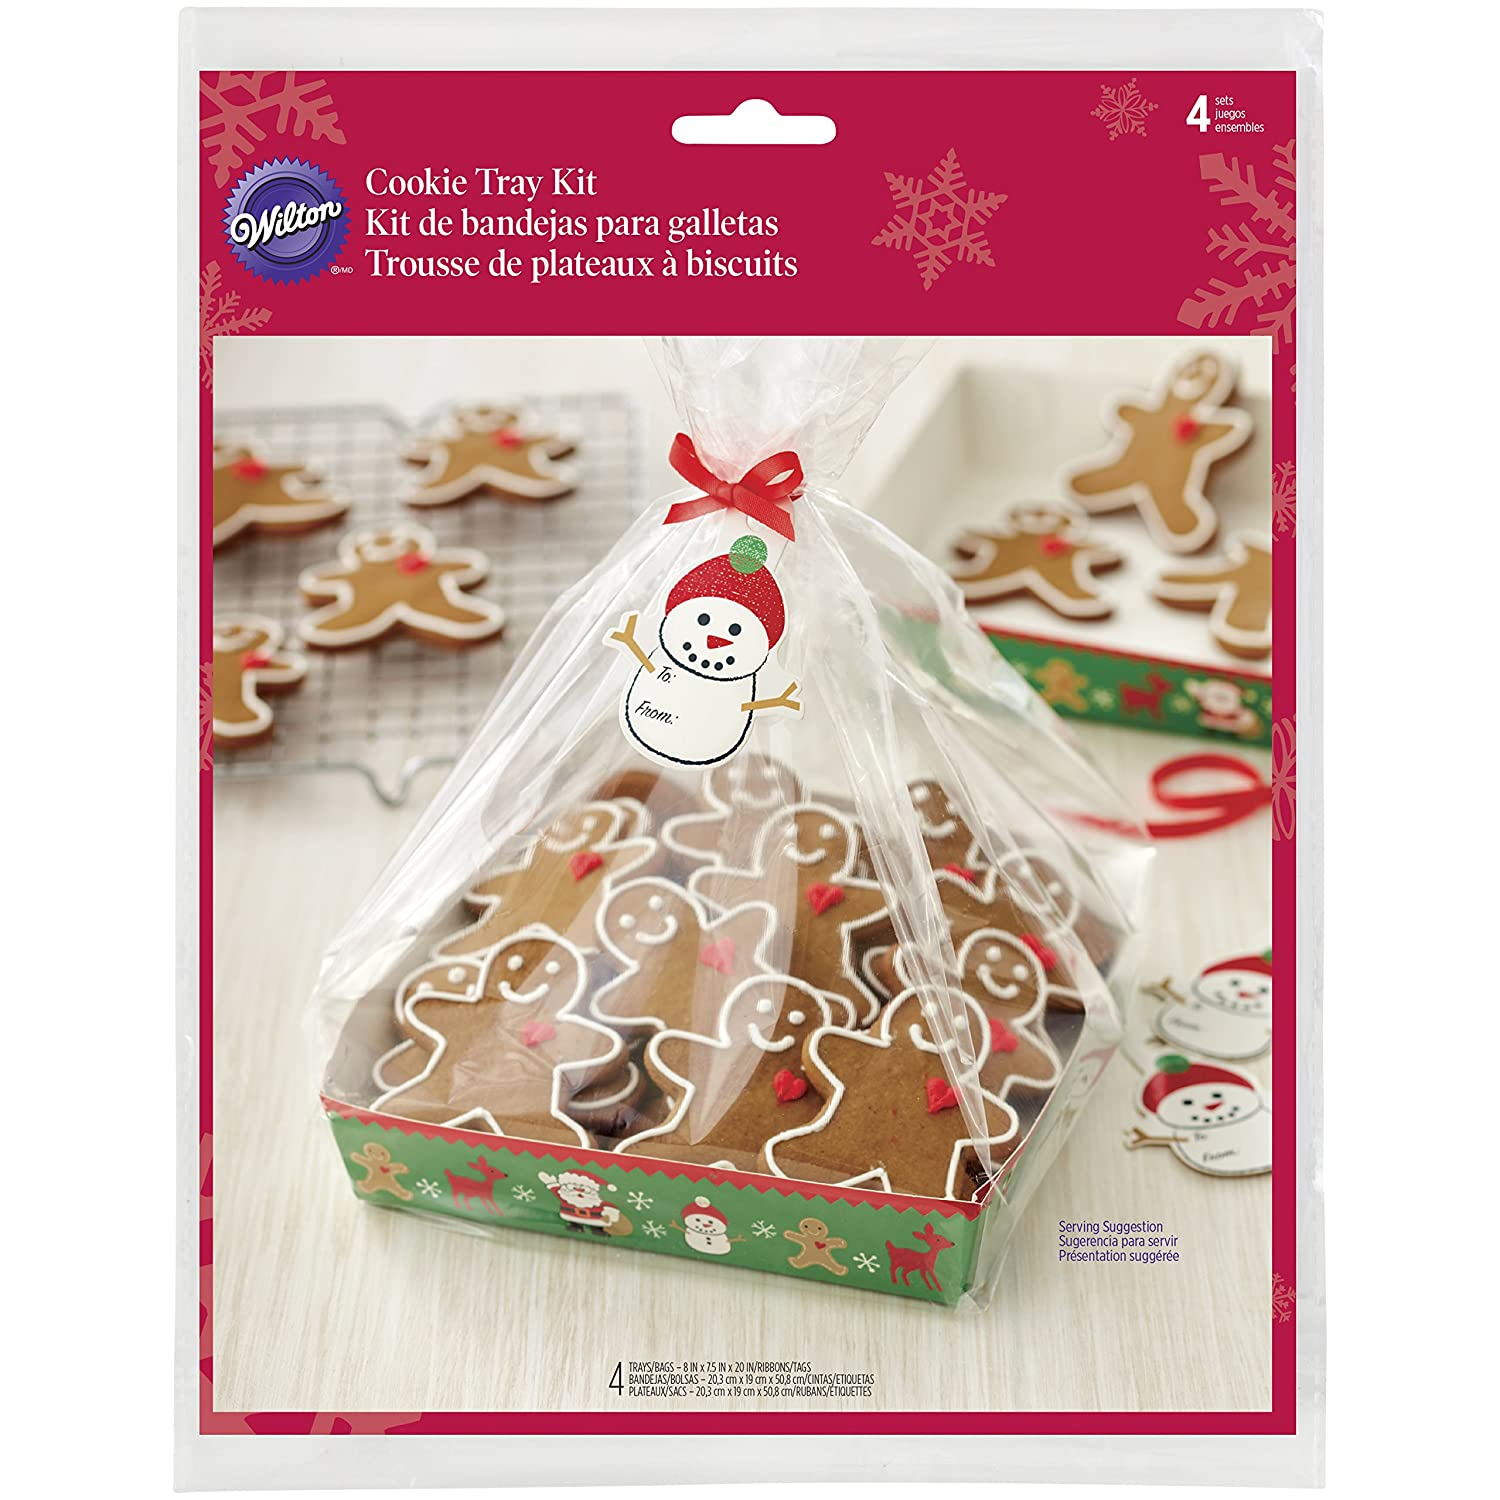 Amazon.com: Wilton 1912-2136 Merry Cookie Tray Kit - 4 count ...